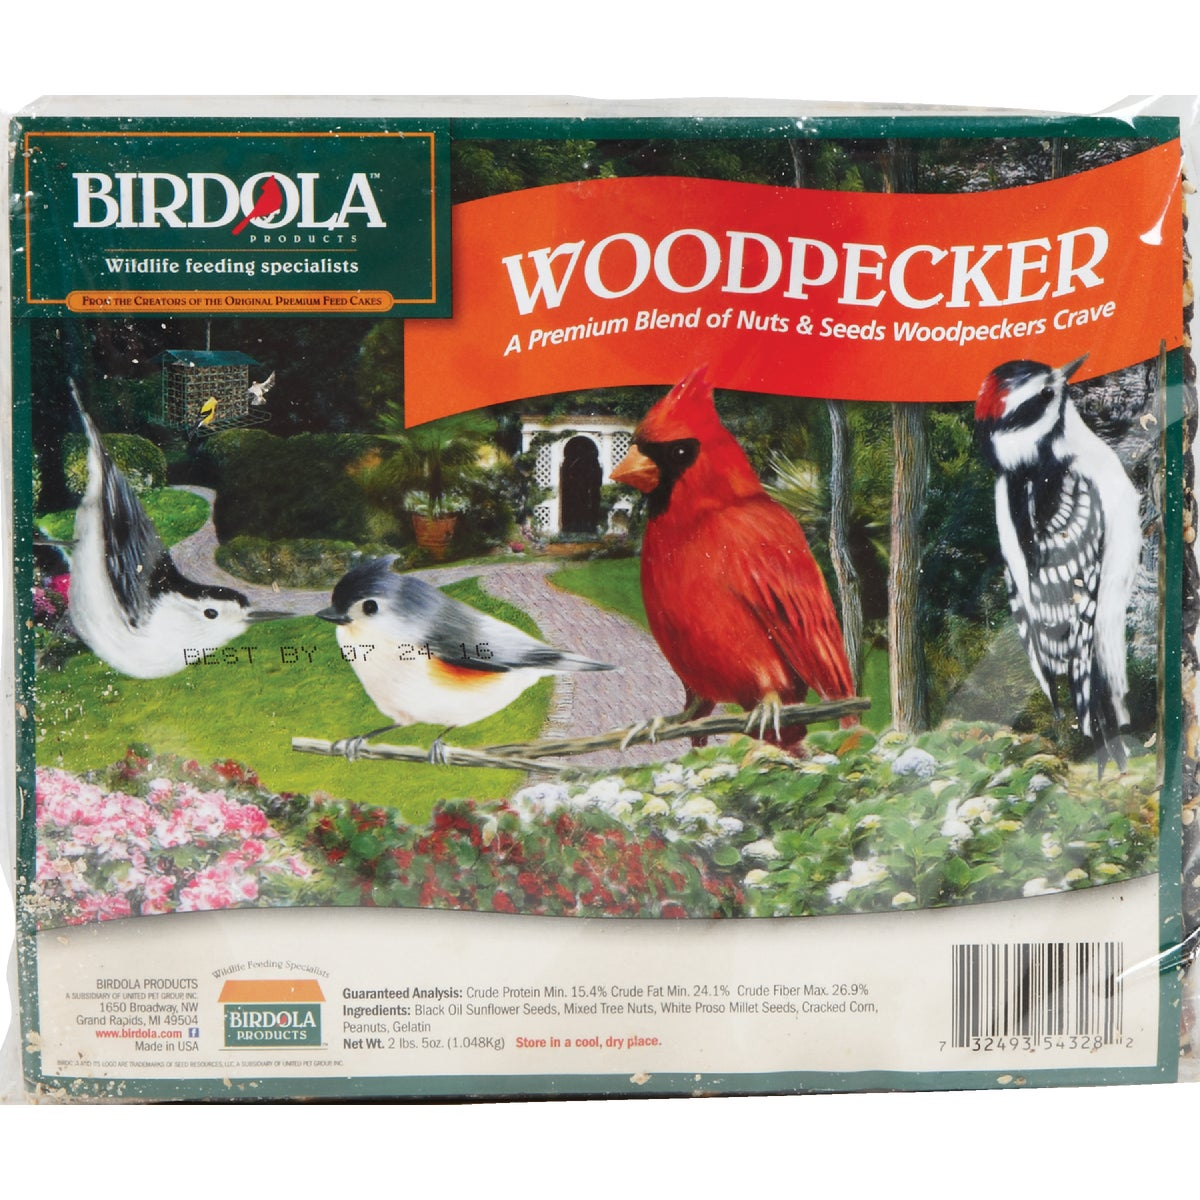 WOODPECKER SNACK CAKE